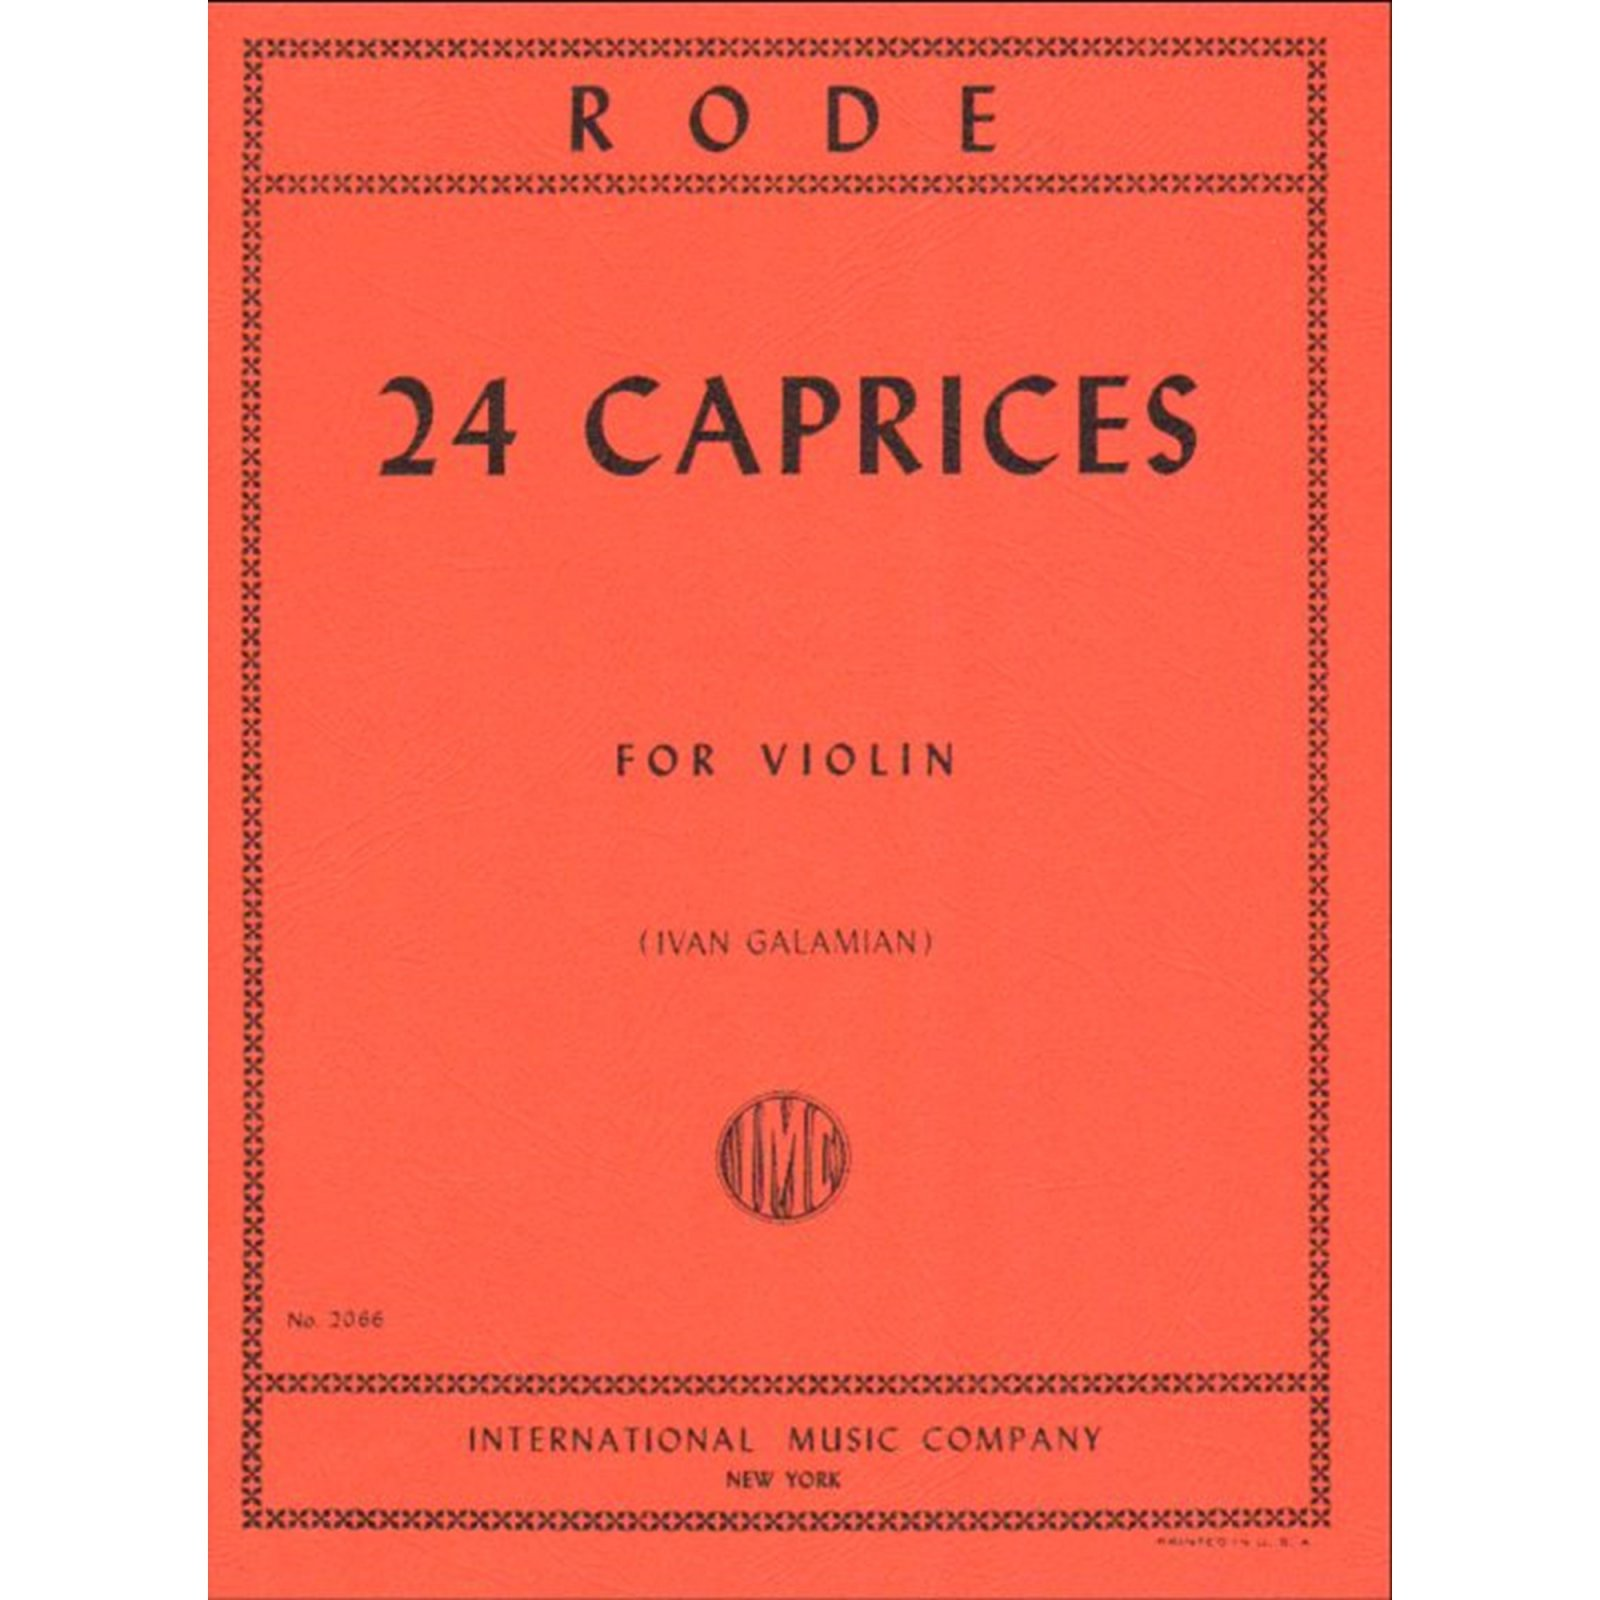 Rode: 24 Caprices Ed. Galamian